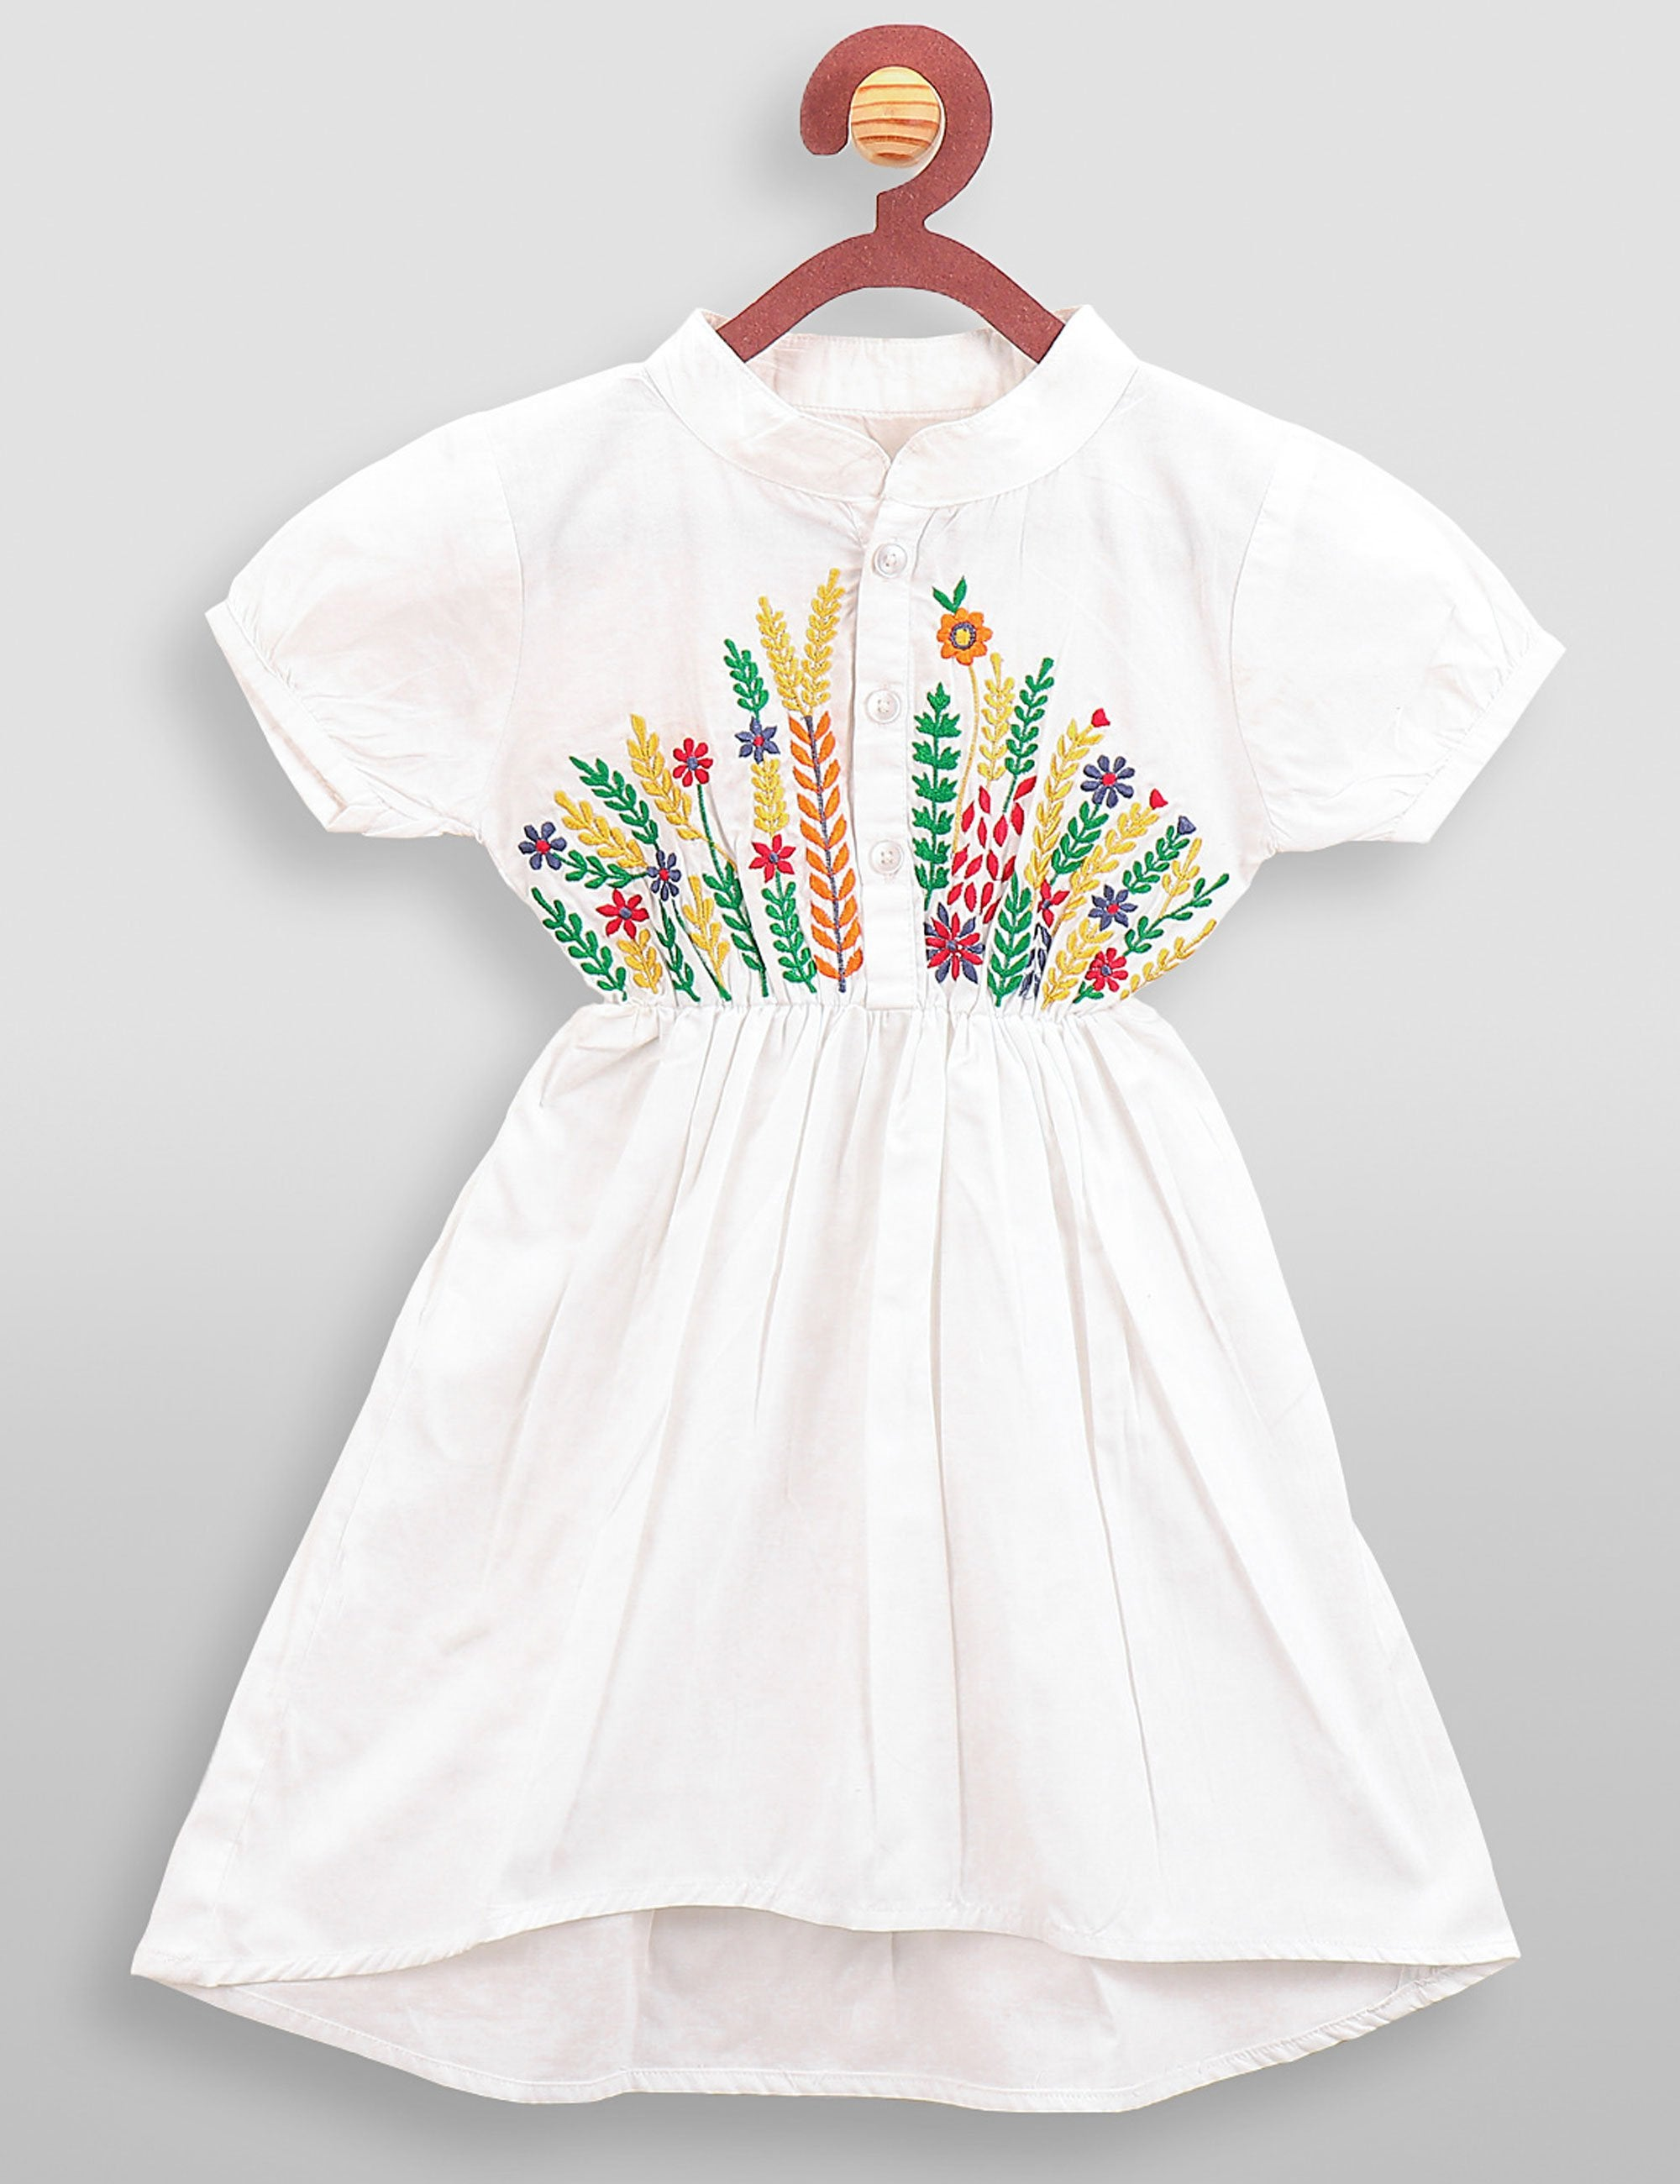 White Embrodiery Dress